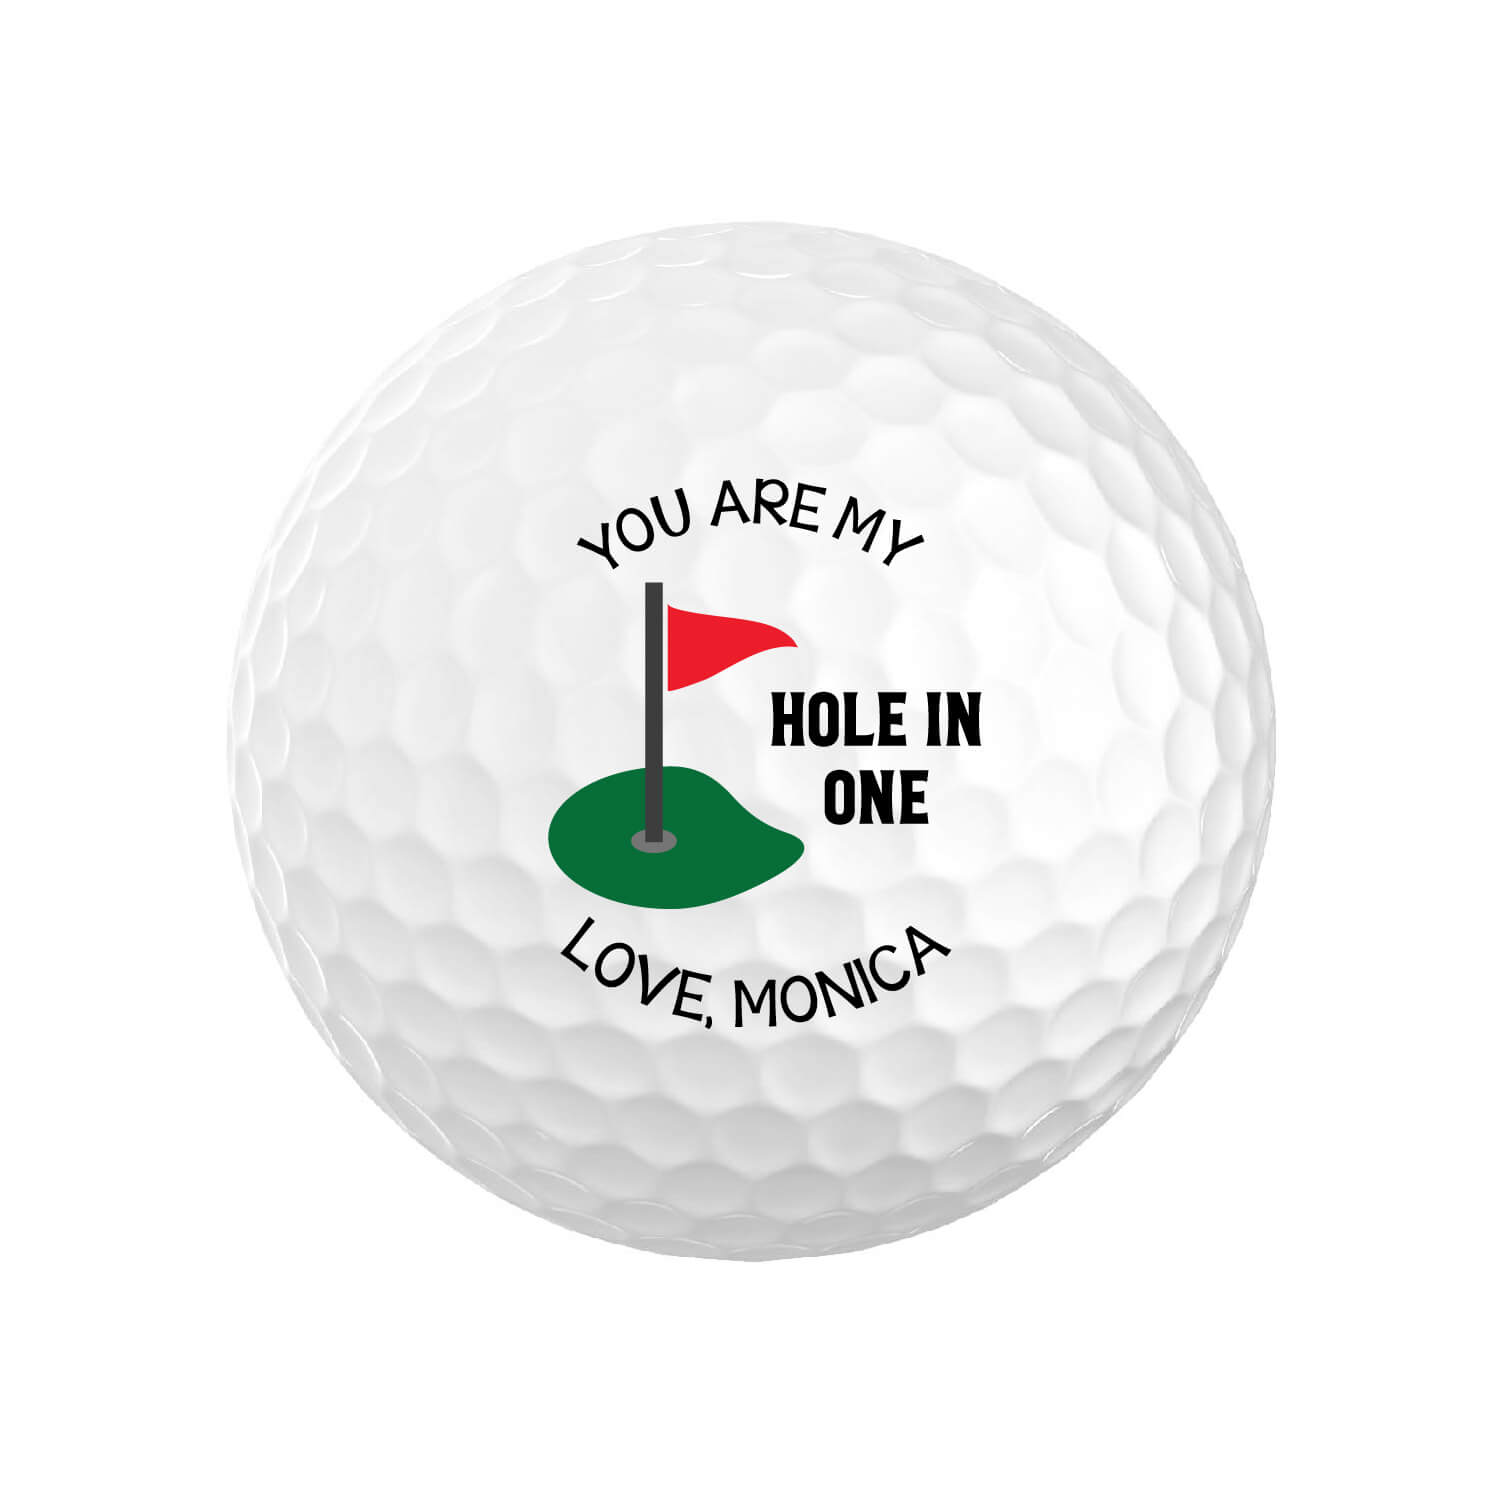 You Are My Hole In One Golf Balls